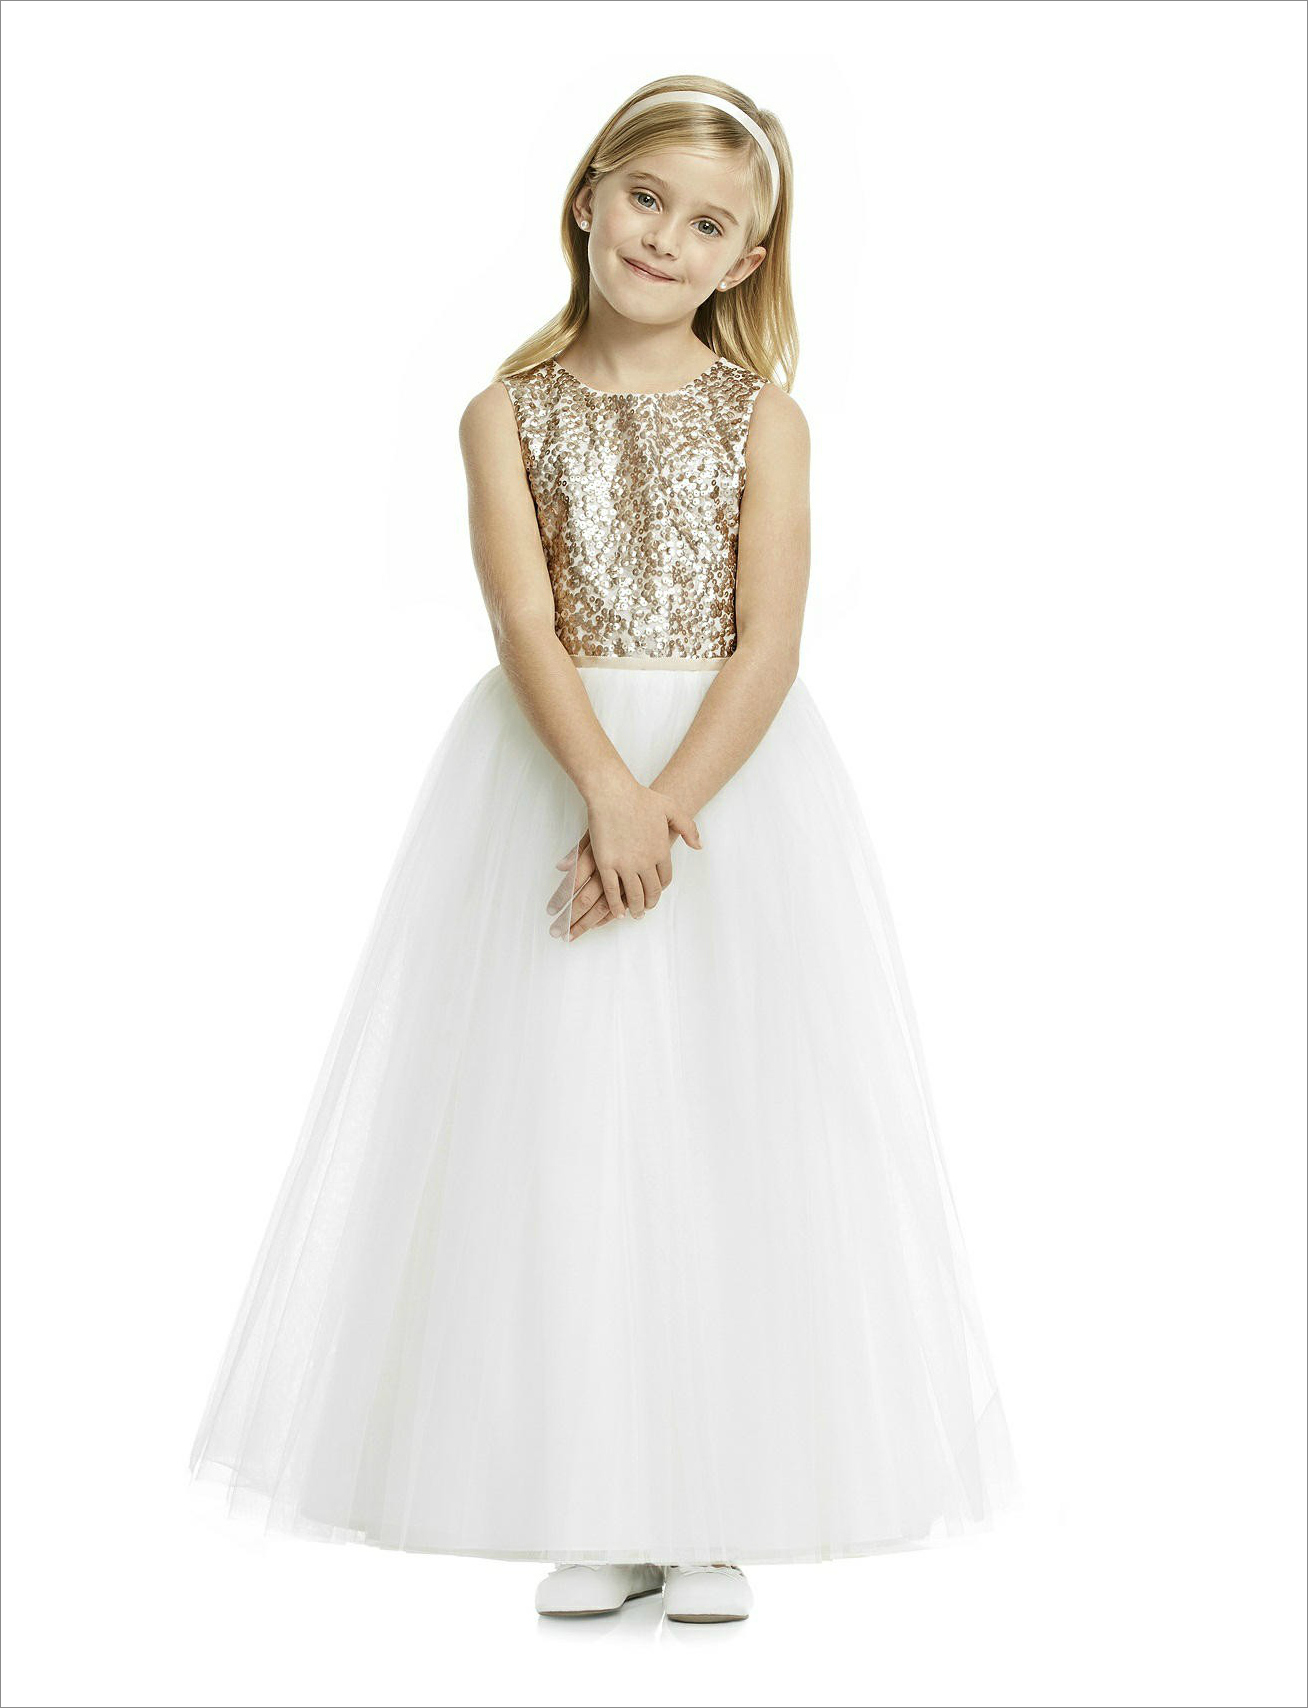 Sequin bodice flower girl dress from The Dessy Group